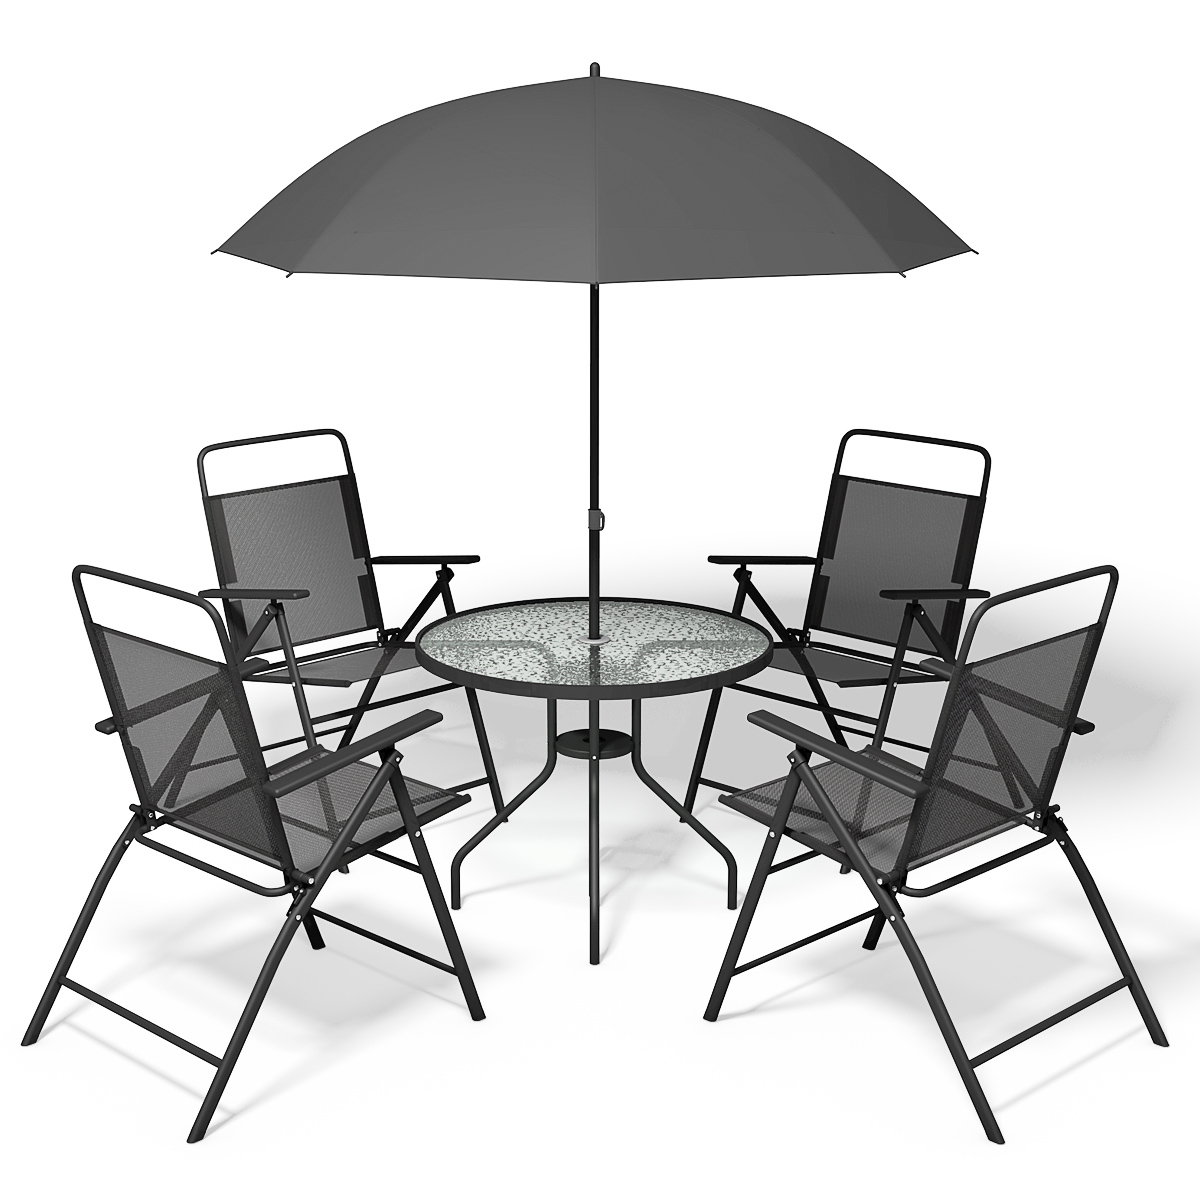 Patio Folding Chairs Costway 6 Pcs Patio Garden Set Furniture Umbrella Gray With 4 Folding Chairs Table